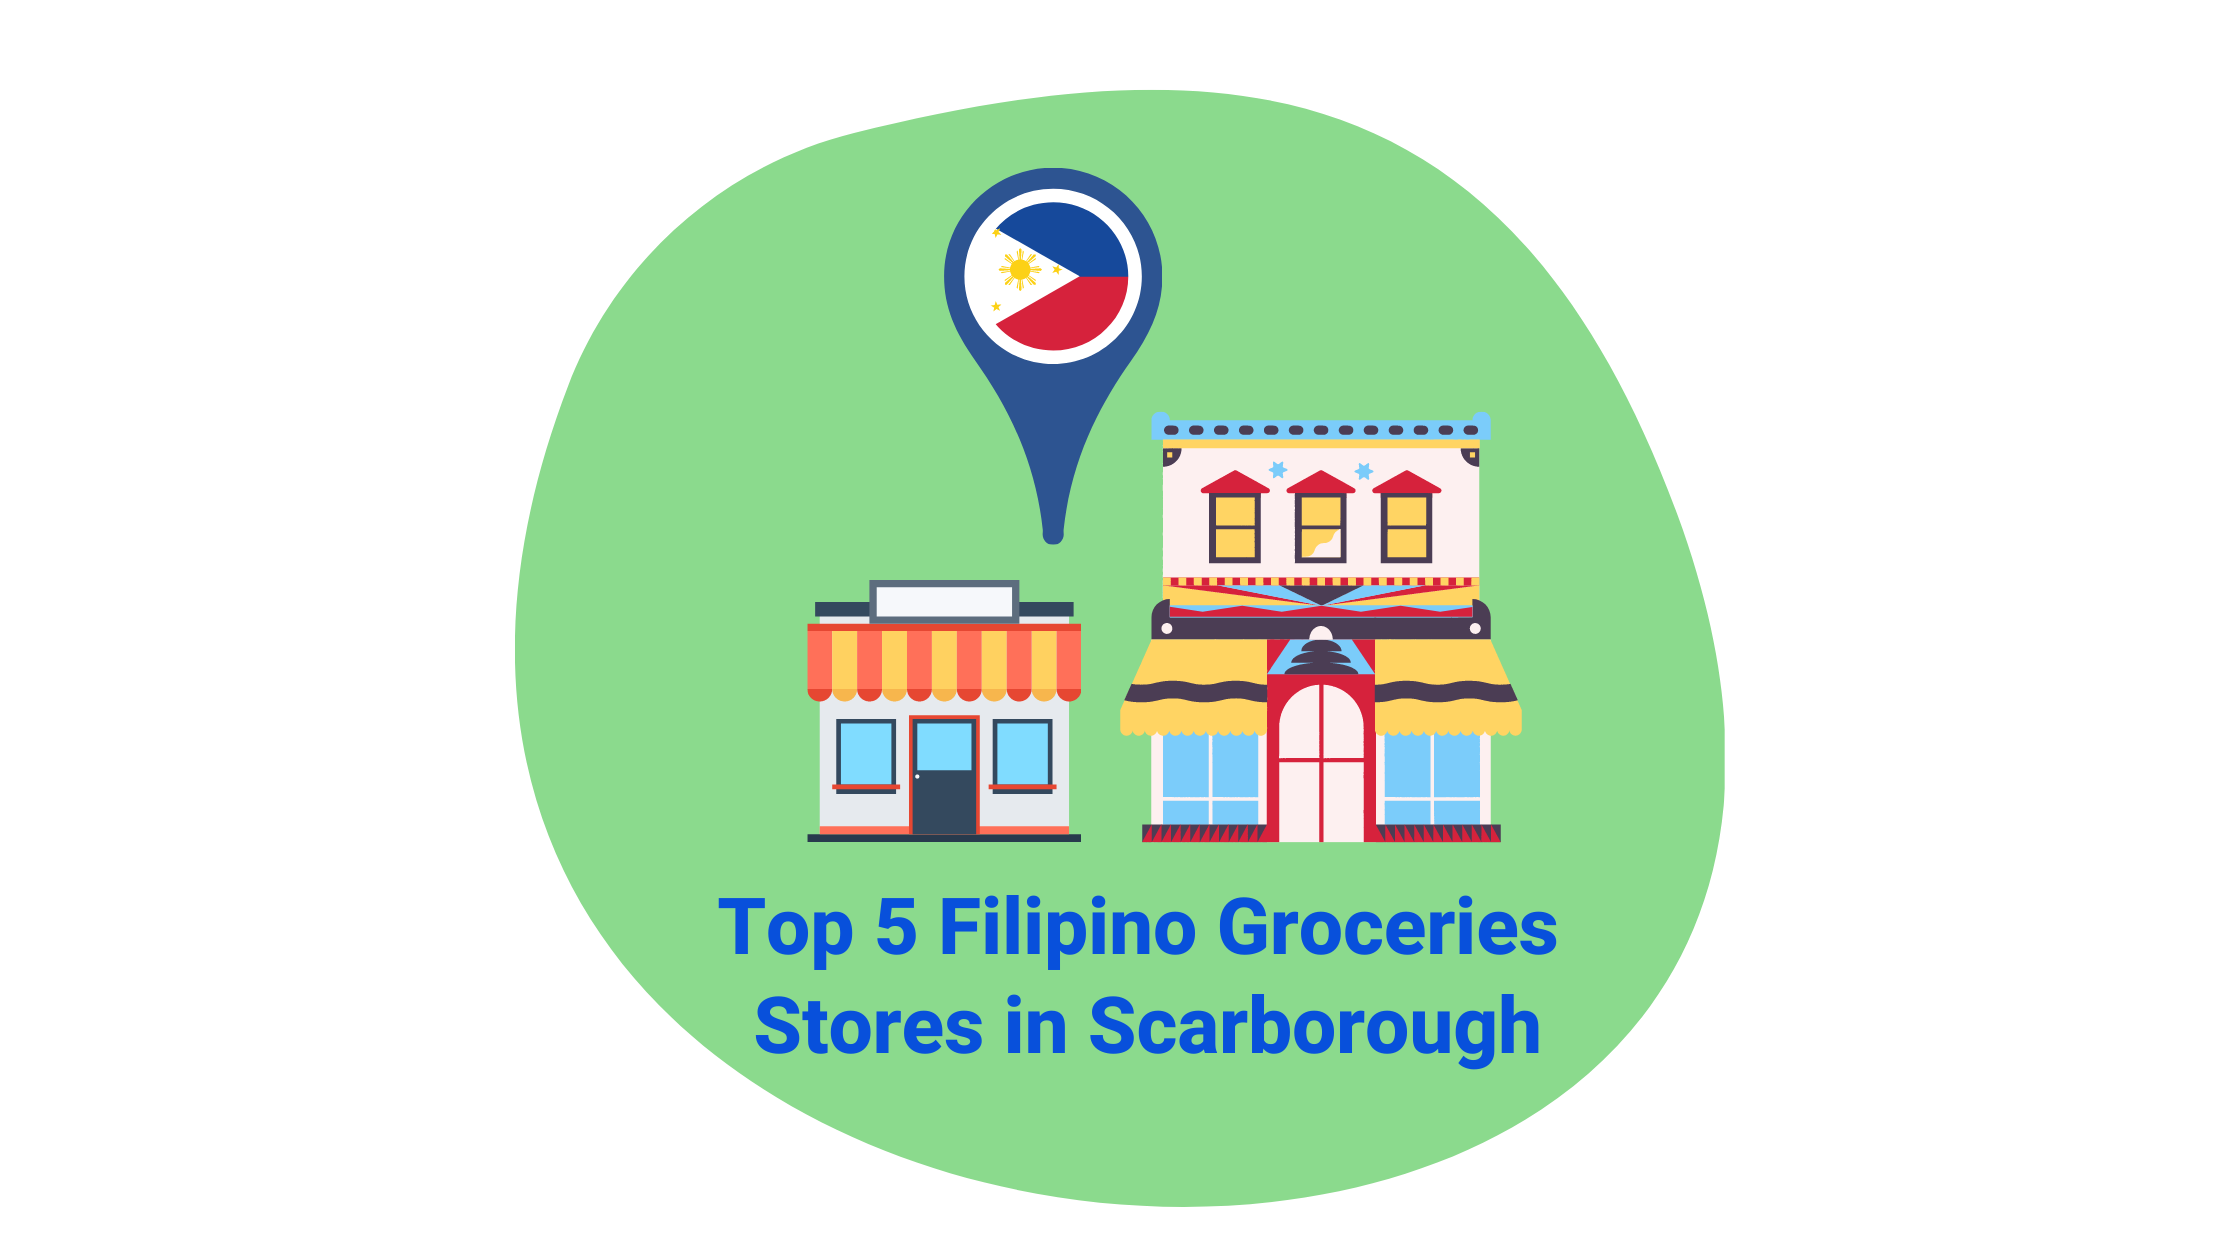 Top 5 Filipino Groceries in Scarborough